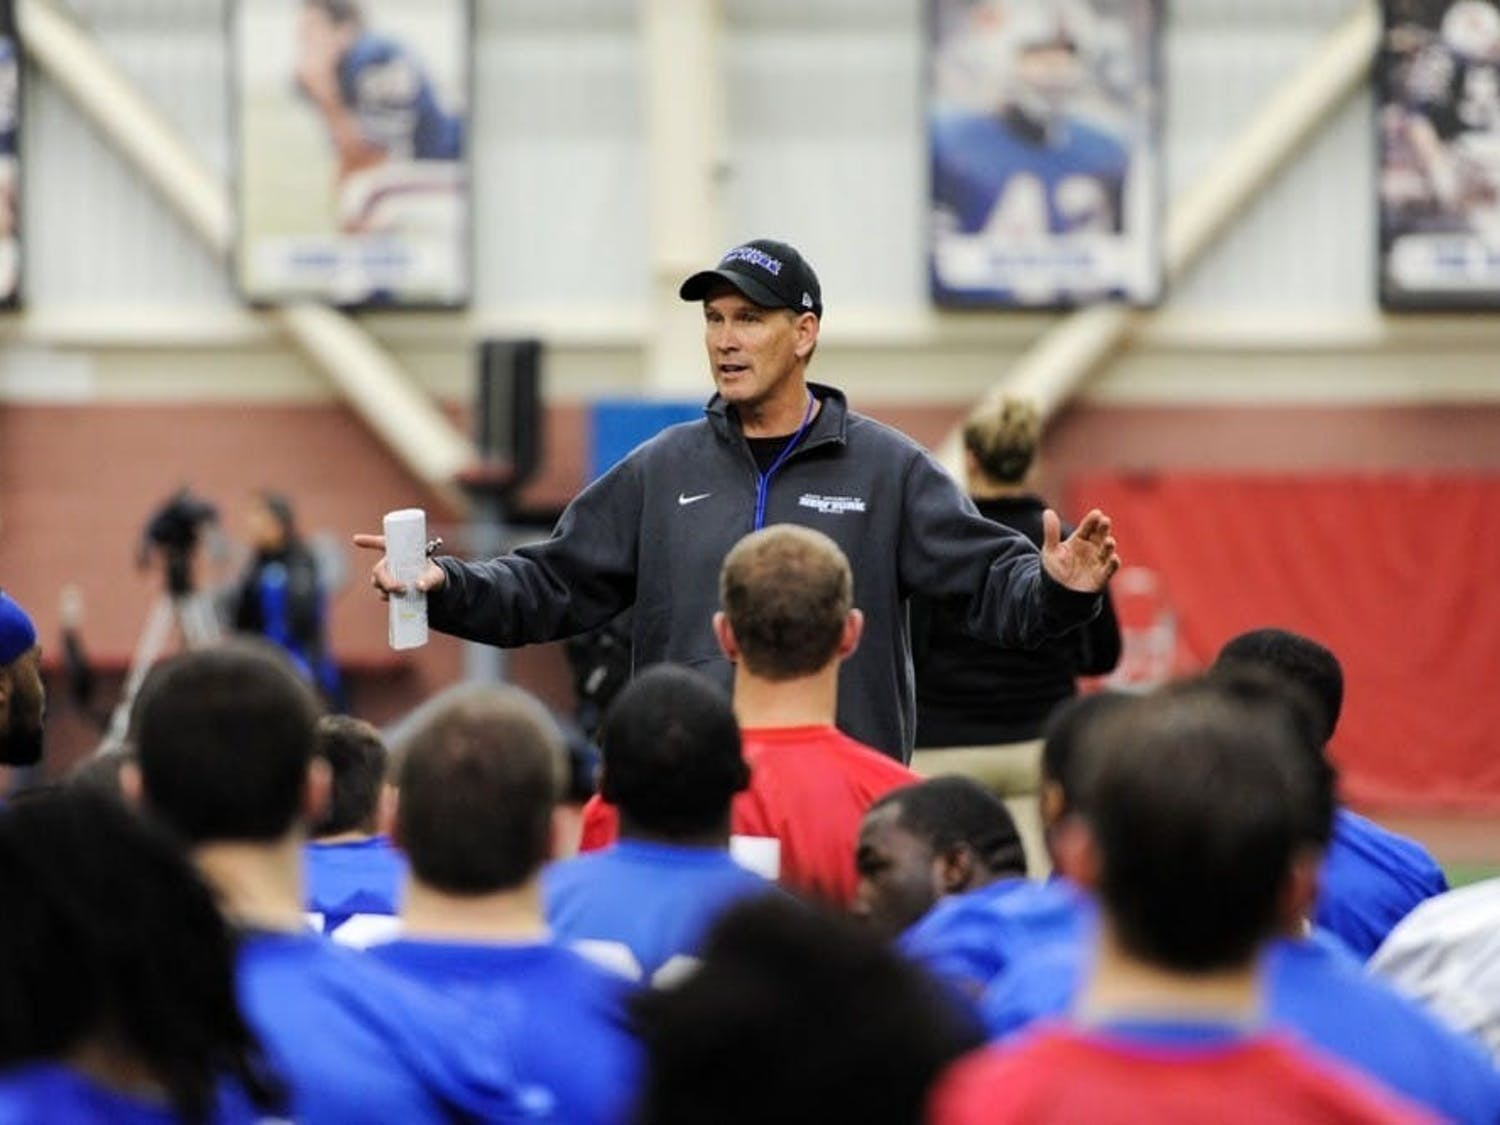 Lance Leipold has been rumored as a potential candidate for multiple high-profile head coaching jobs this offseason, including at UCF, Illinois and now Kansas.